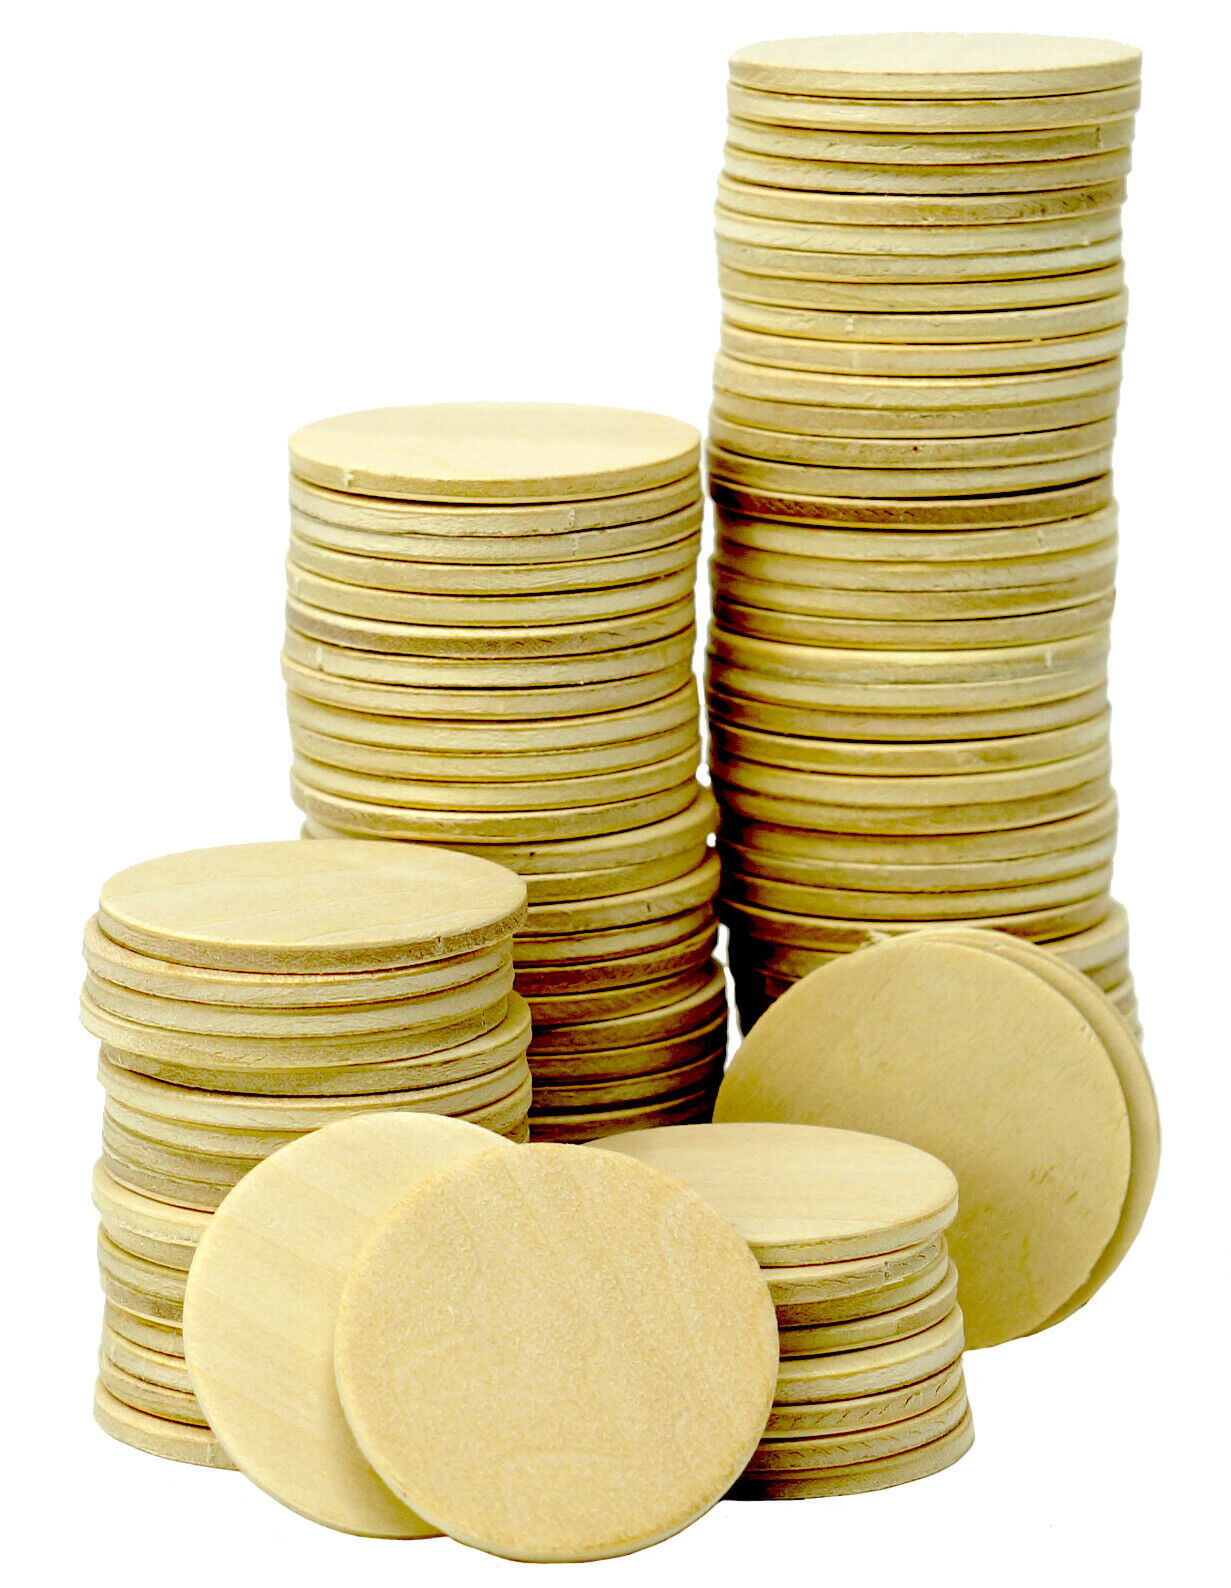 100 Round Unfinished 1.5″ Wood Cutout Circles Chips for Crafts, Games, Ornaments Crafting Pieces